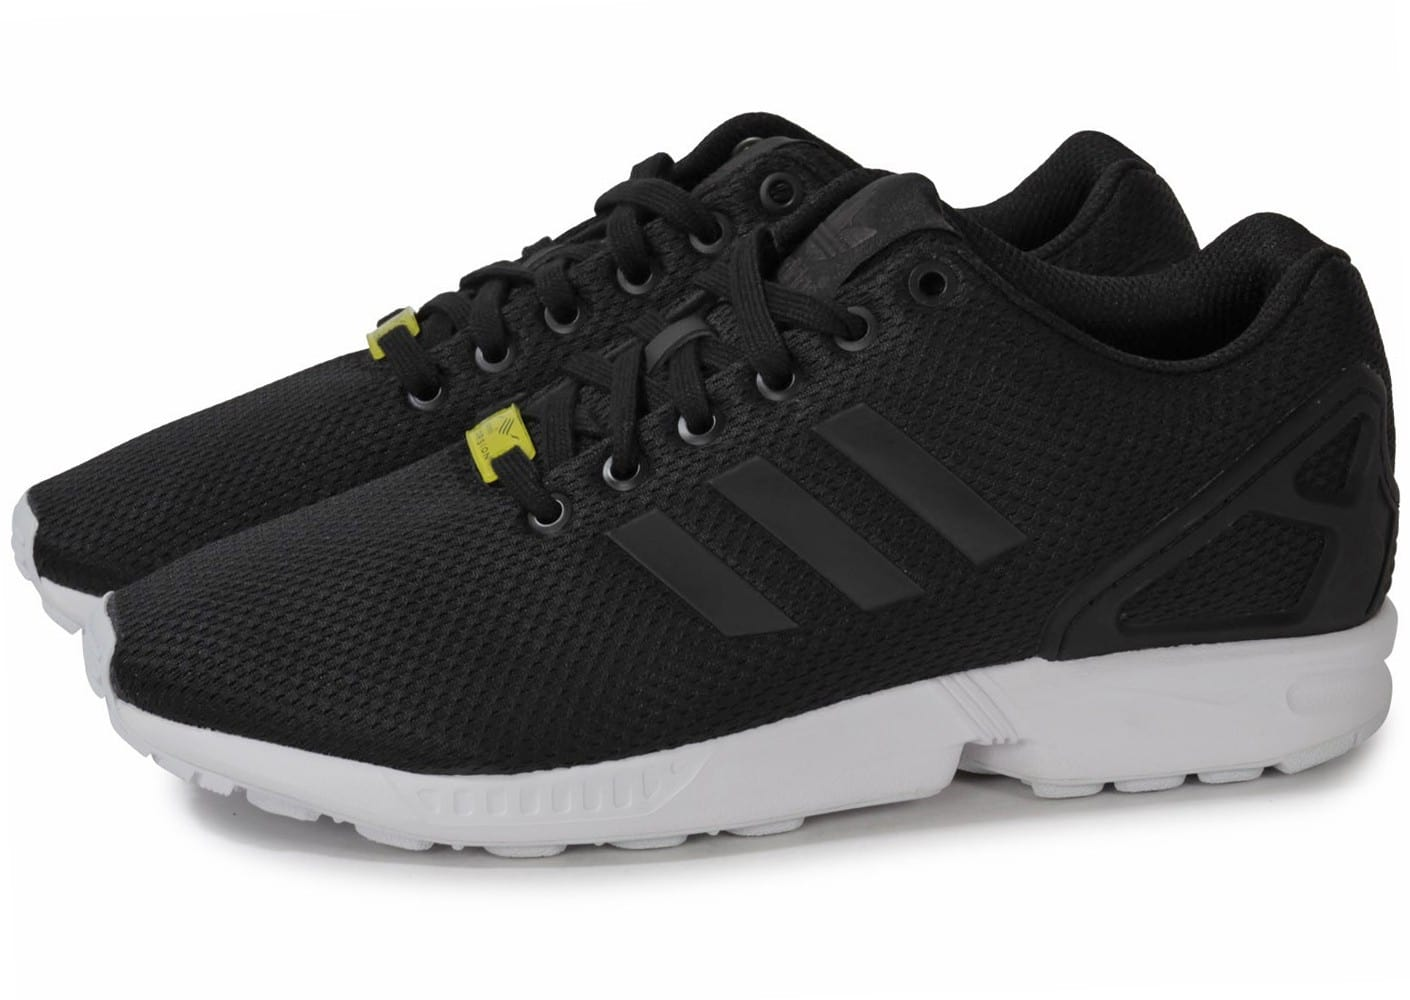 chaussure homme adidas zx flux 2018